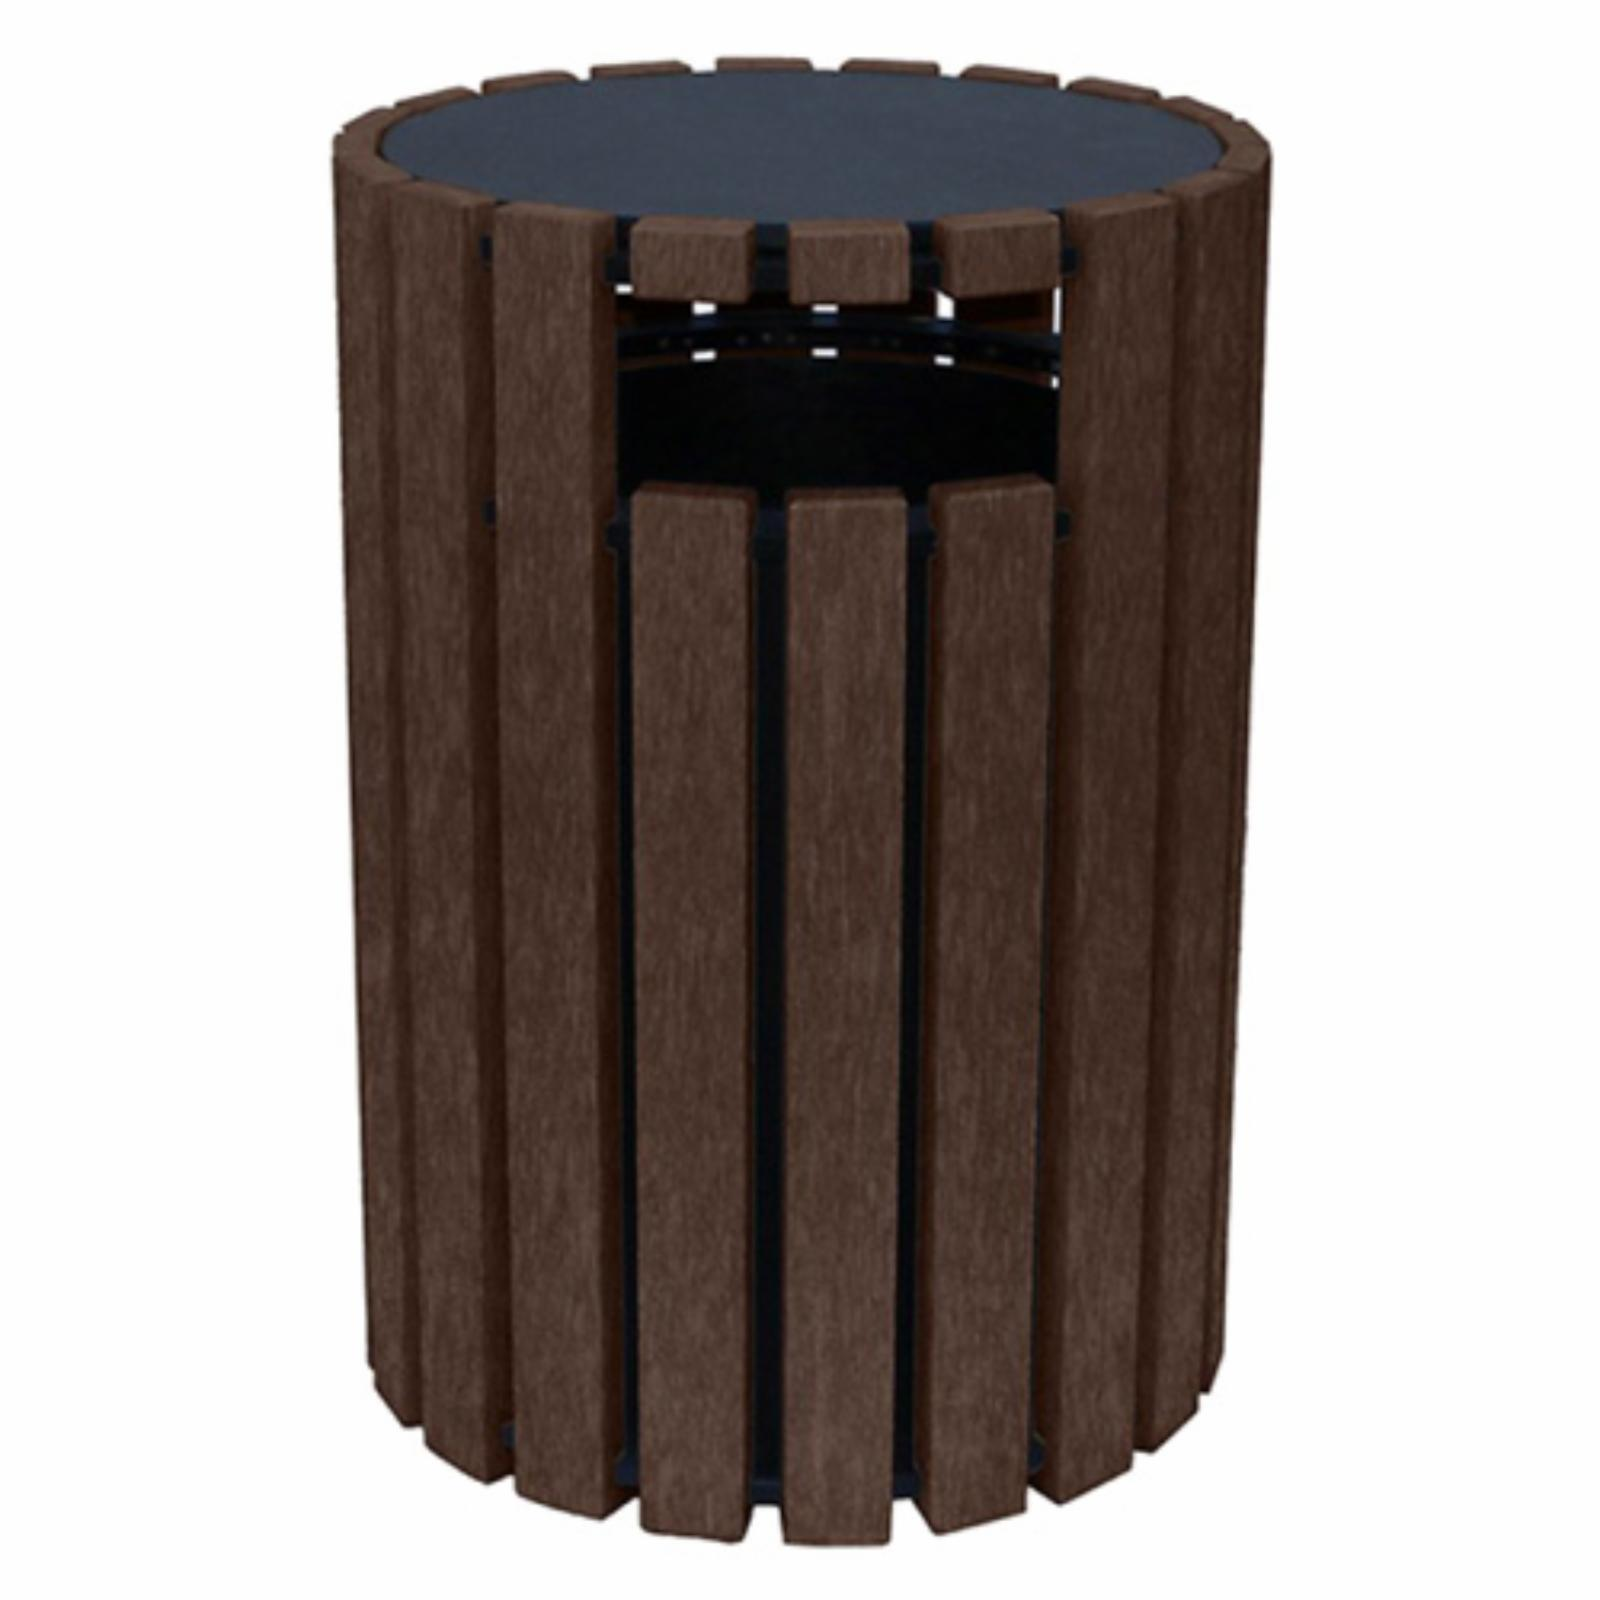 Polly Products 33 gal. Round Trash Receptacle with Rain Cap Brown - ASM-R33C-01-BK/BN